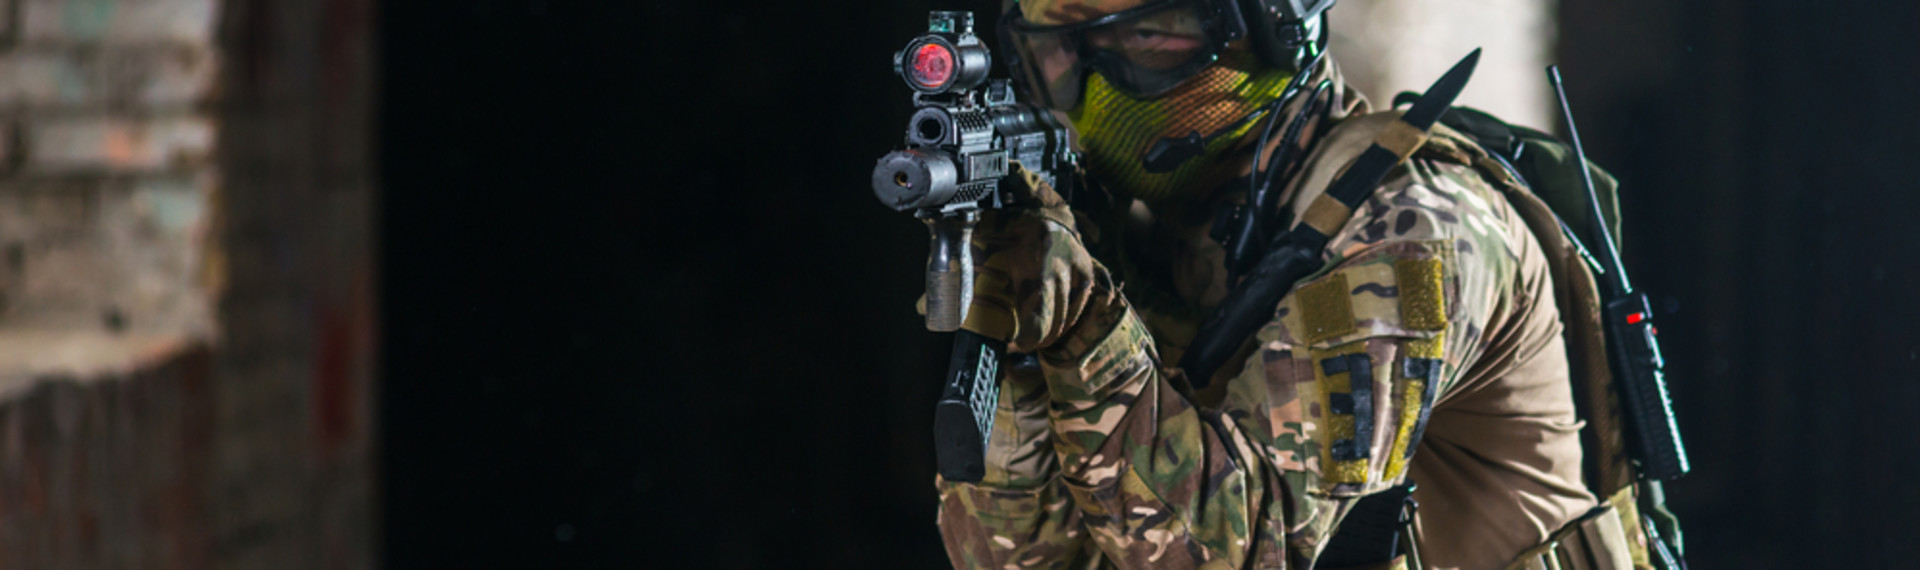 Airsoft Assault in Budapest for Stag Dos | Pissup